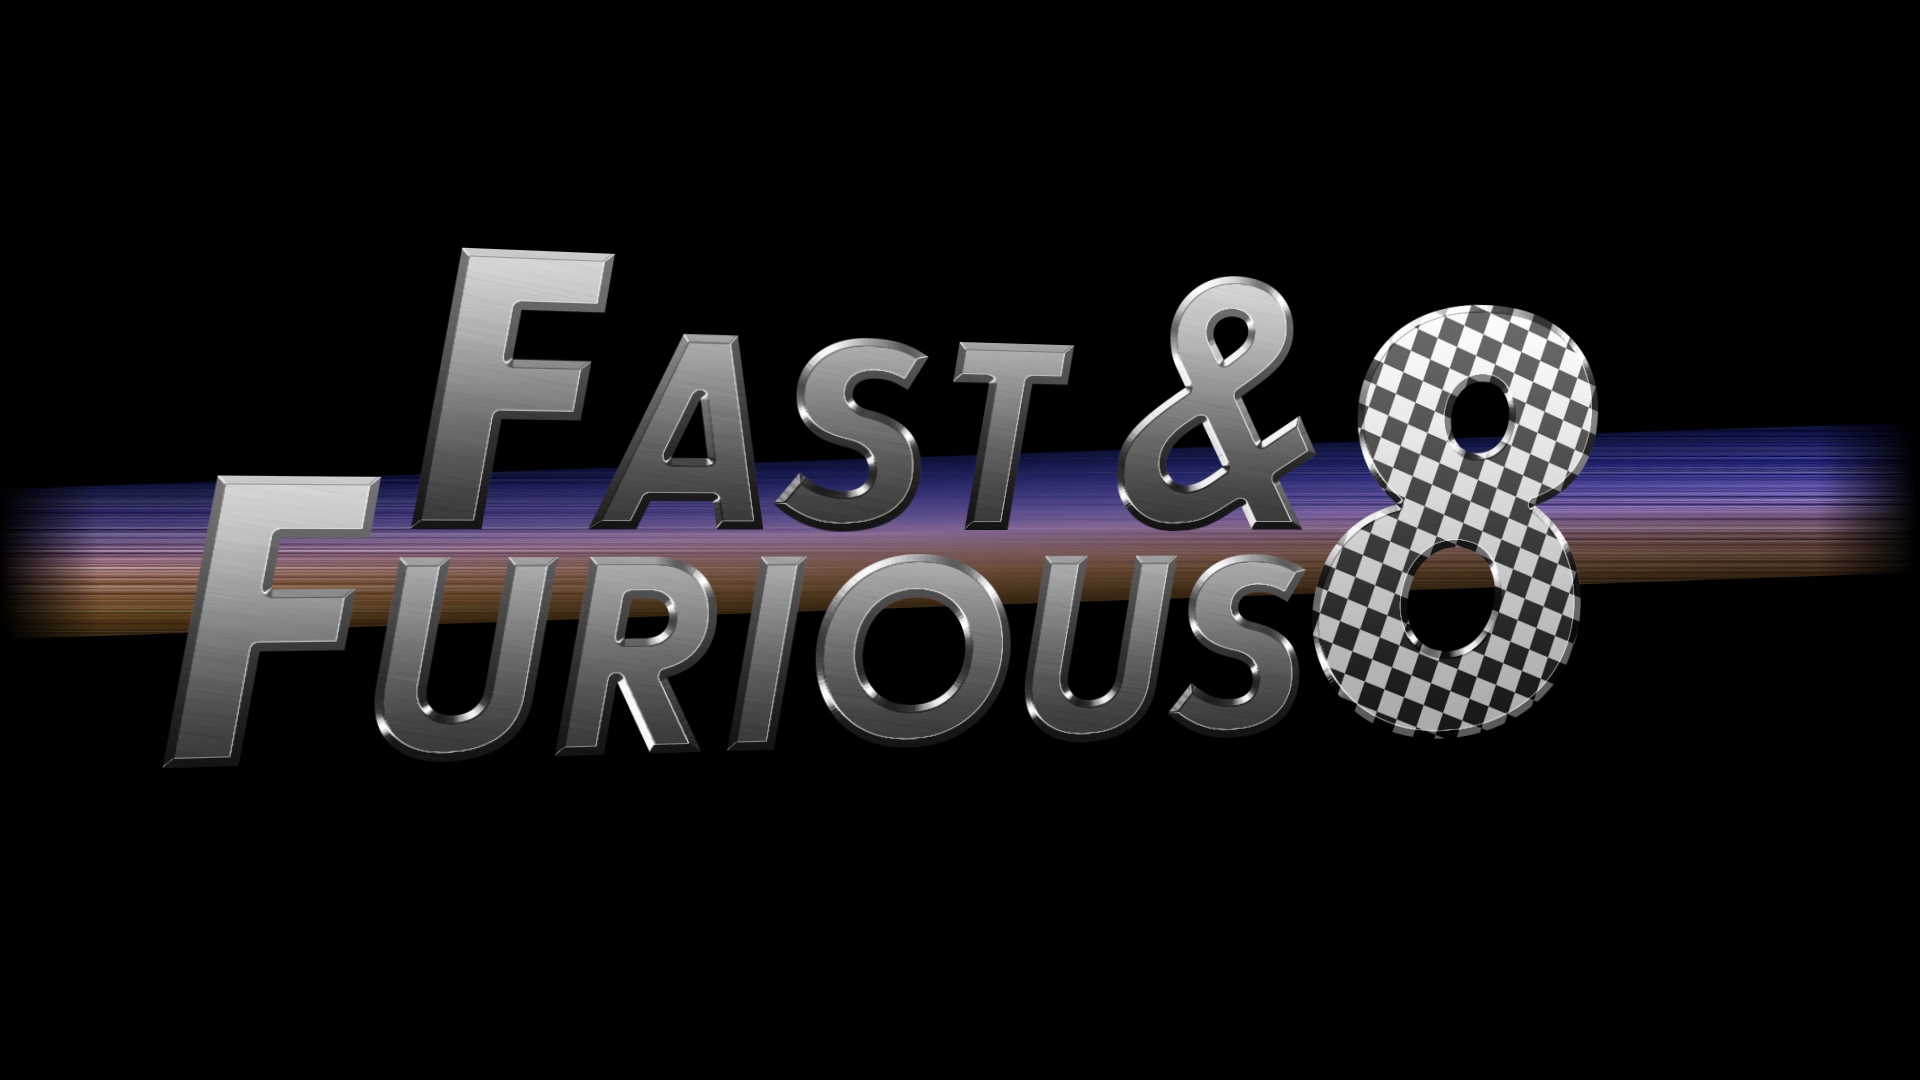 Fast And Furious 8 Pens To Lens